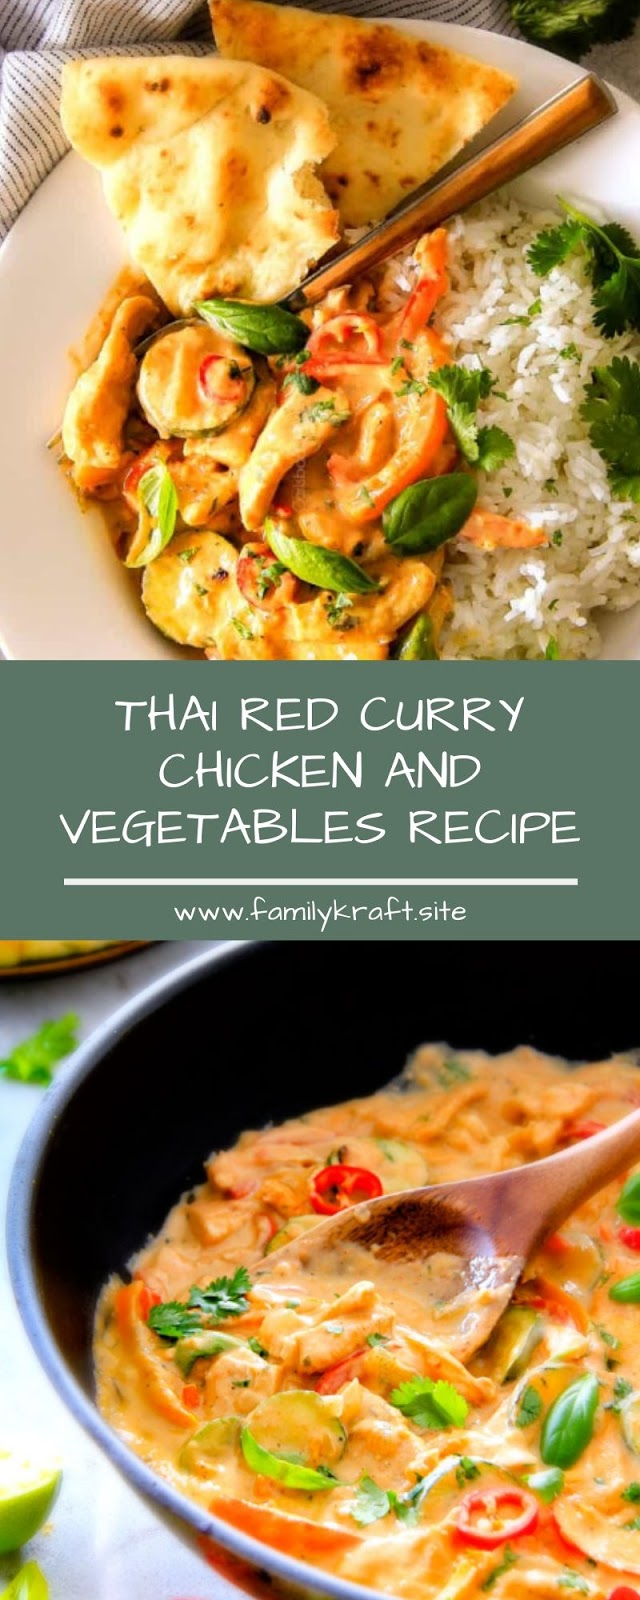 THAI RED CURRY CHICKEN AND VEGETABLES RECIPE